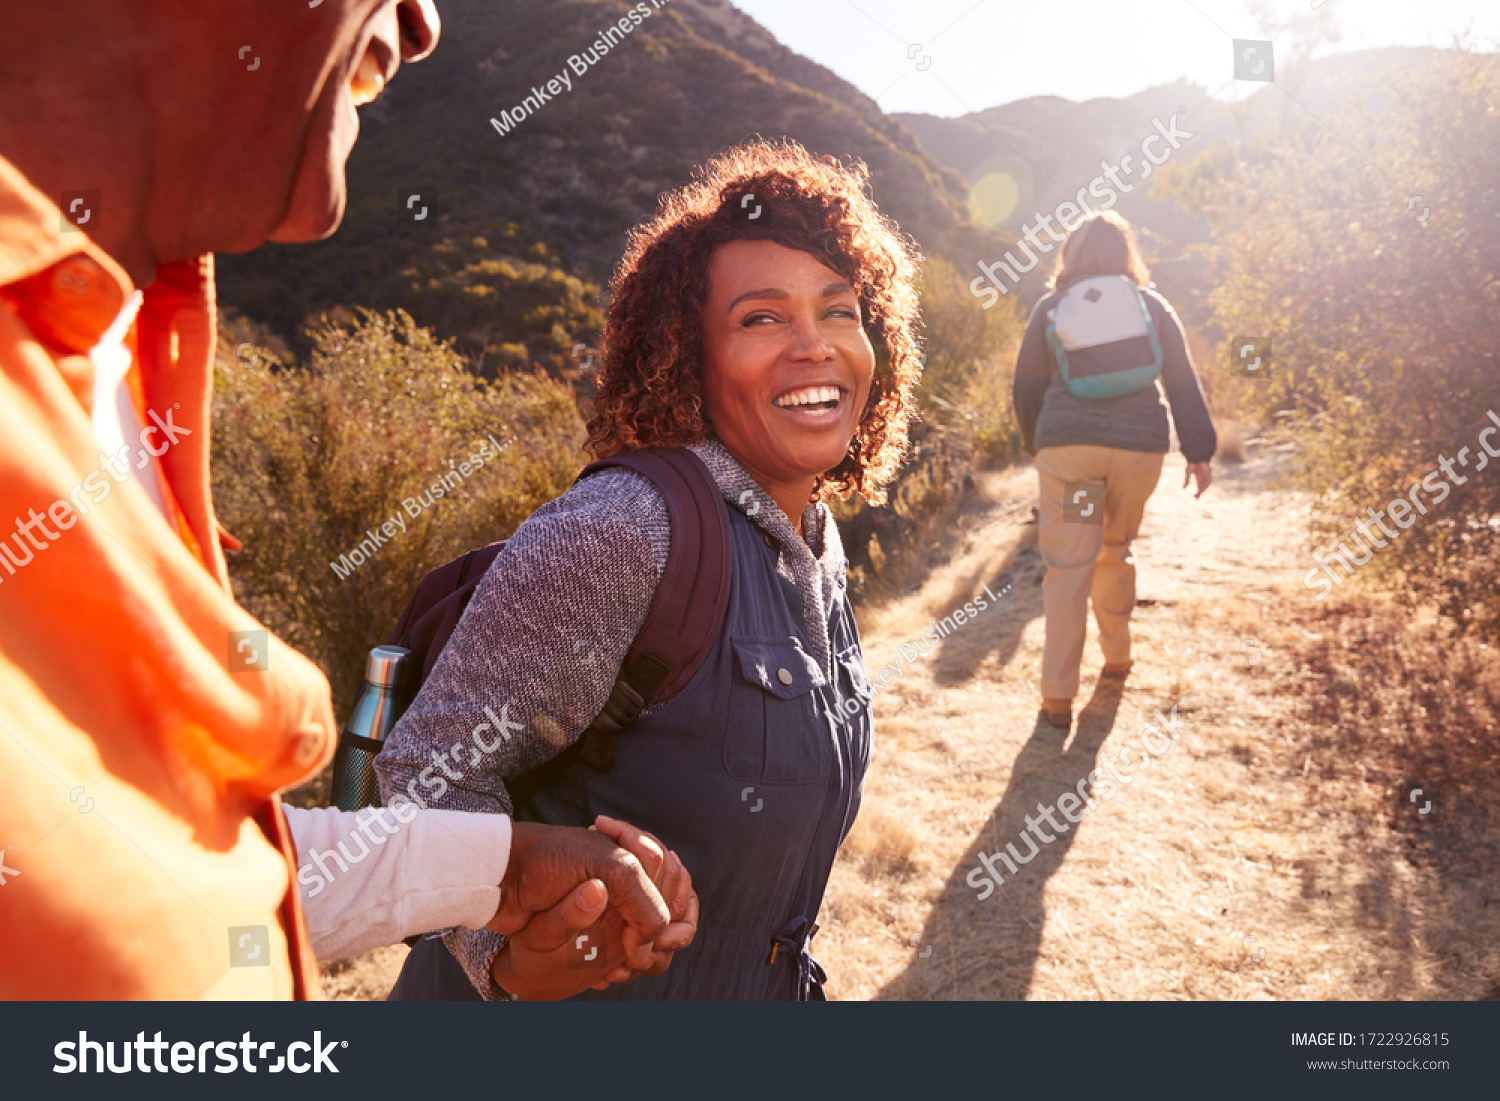 Woman Helping Man On Trail As Group Of Senior Friends Go Hiking In Countryside Together #1722926815